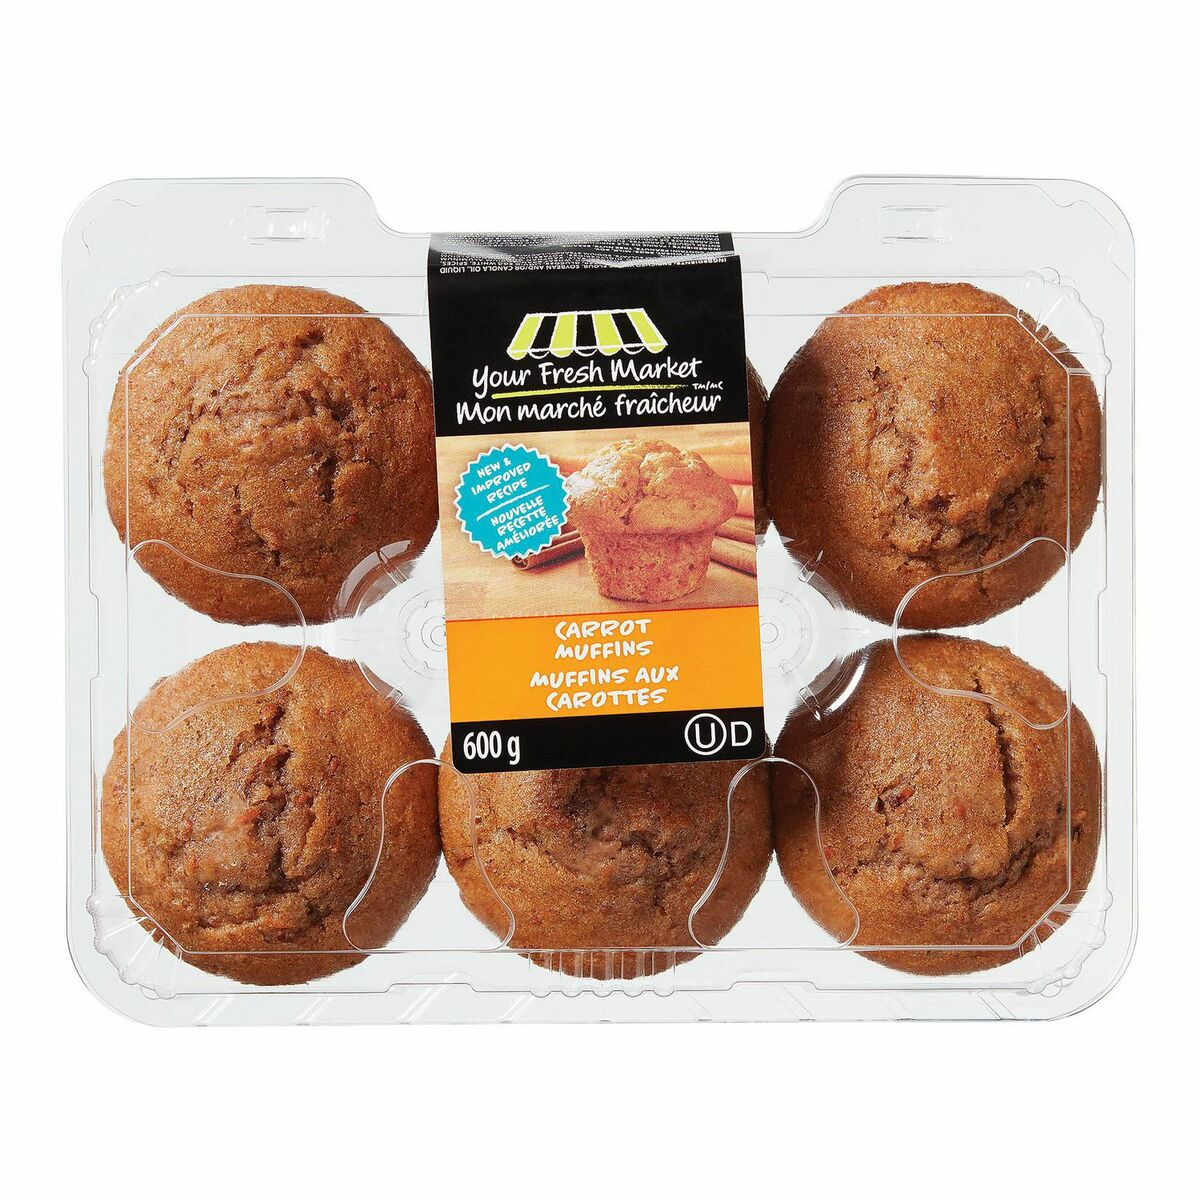 Your Fresh Market Carrot Muffins 600g